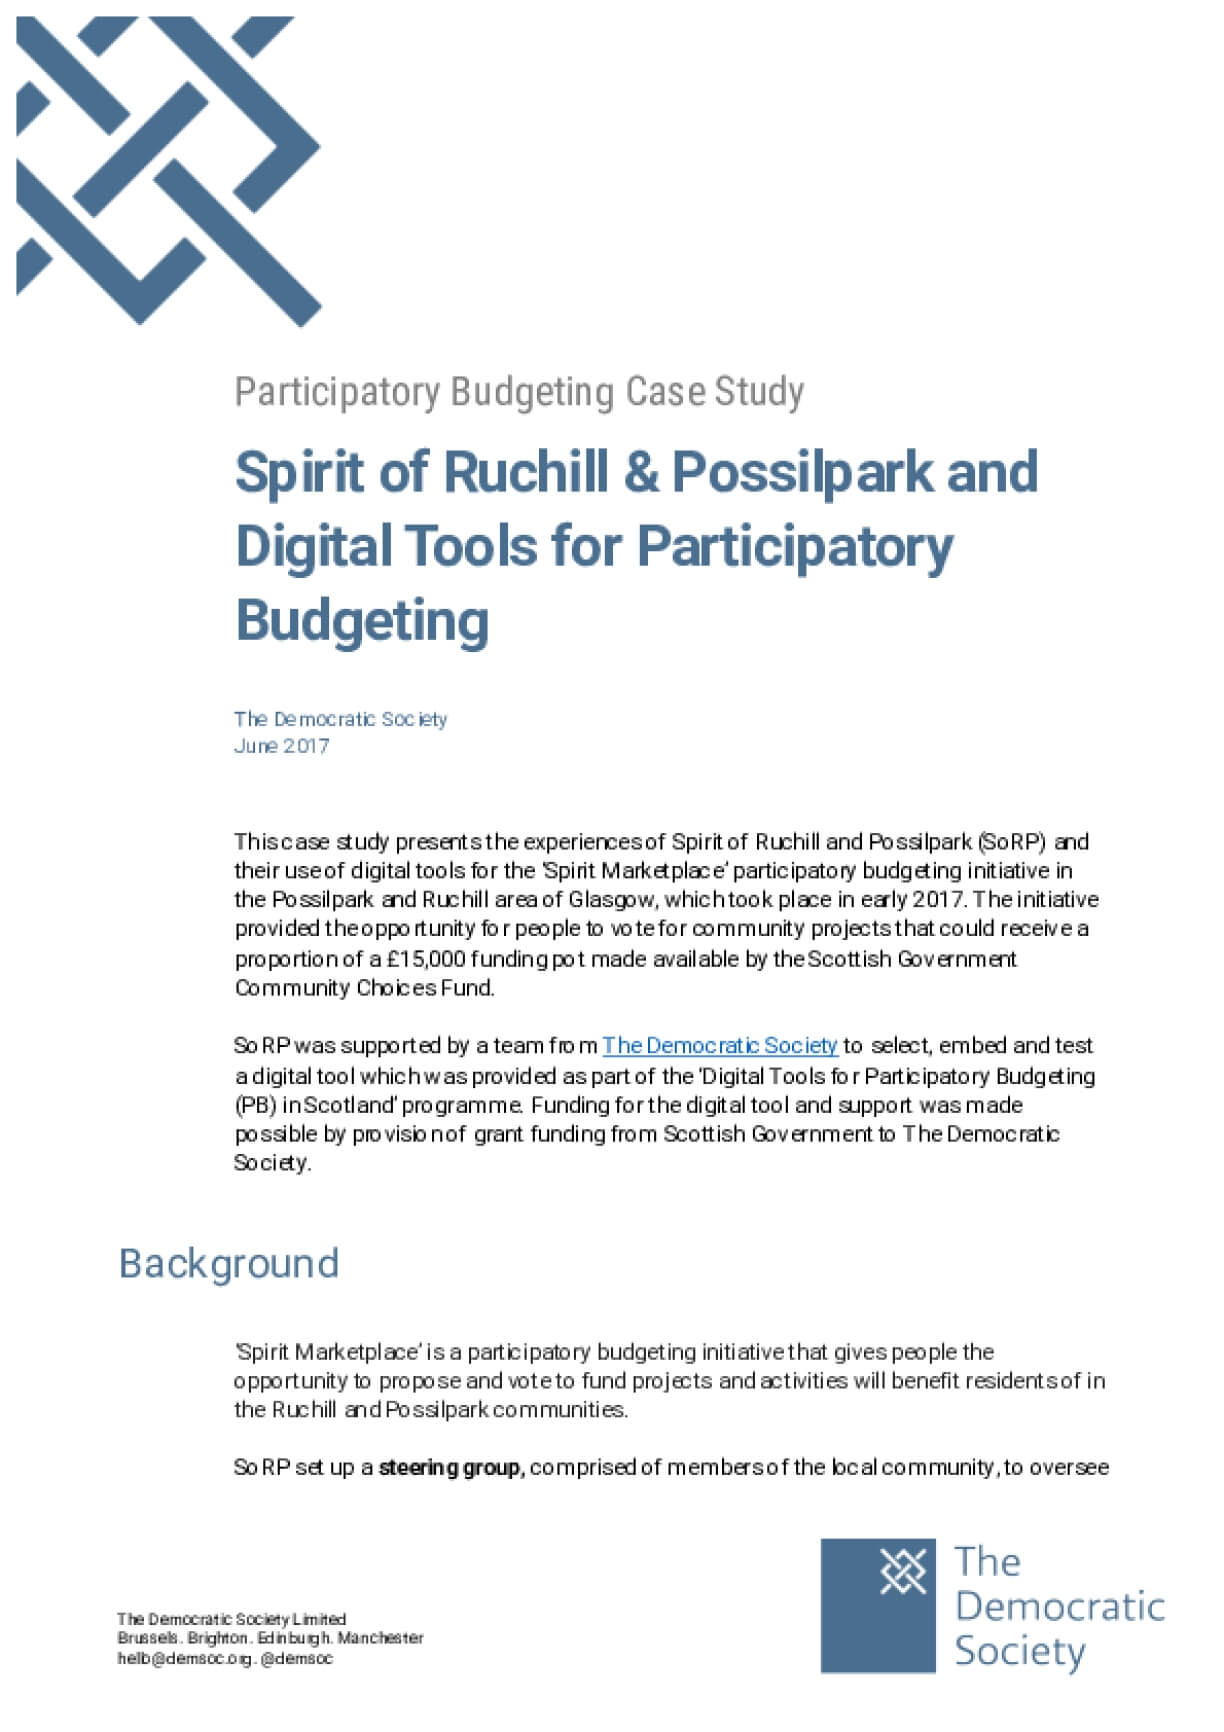 Participatory Budgeting Case Study: Spirit of Ruchill & Possilpark and Digital Tools for Participatory Budgeting